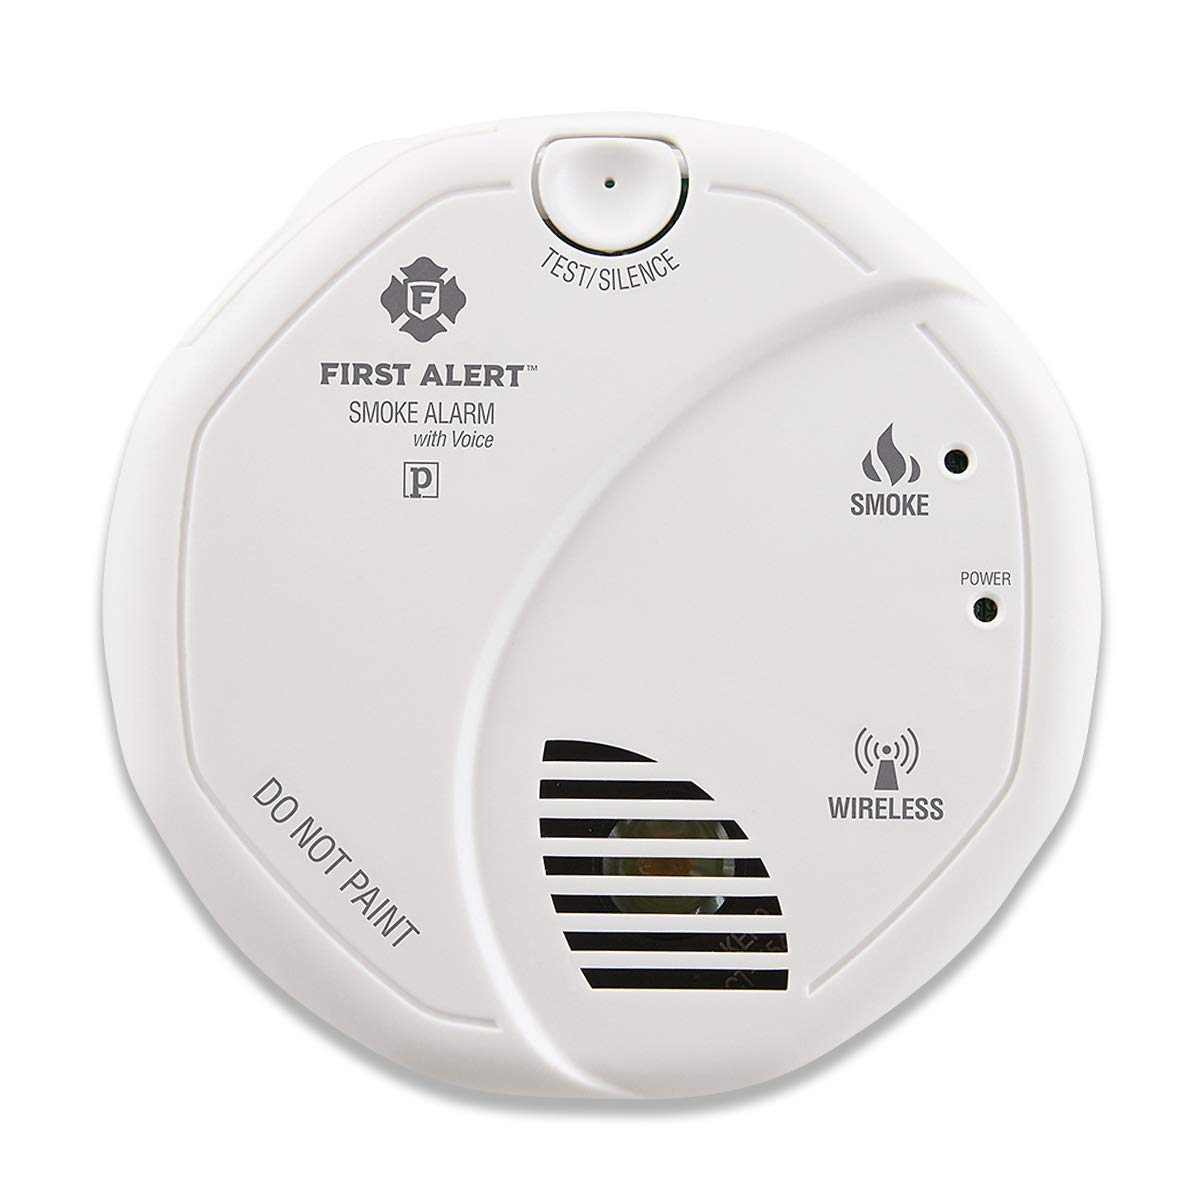 First Alert Smoke Detector Alarm | Battery Powered with Wireless Interconnect | 2-Pack, SA511CN2-3ST by First Alert